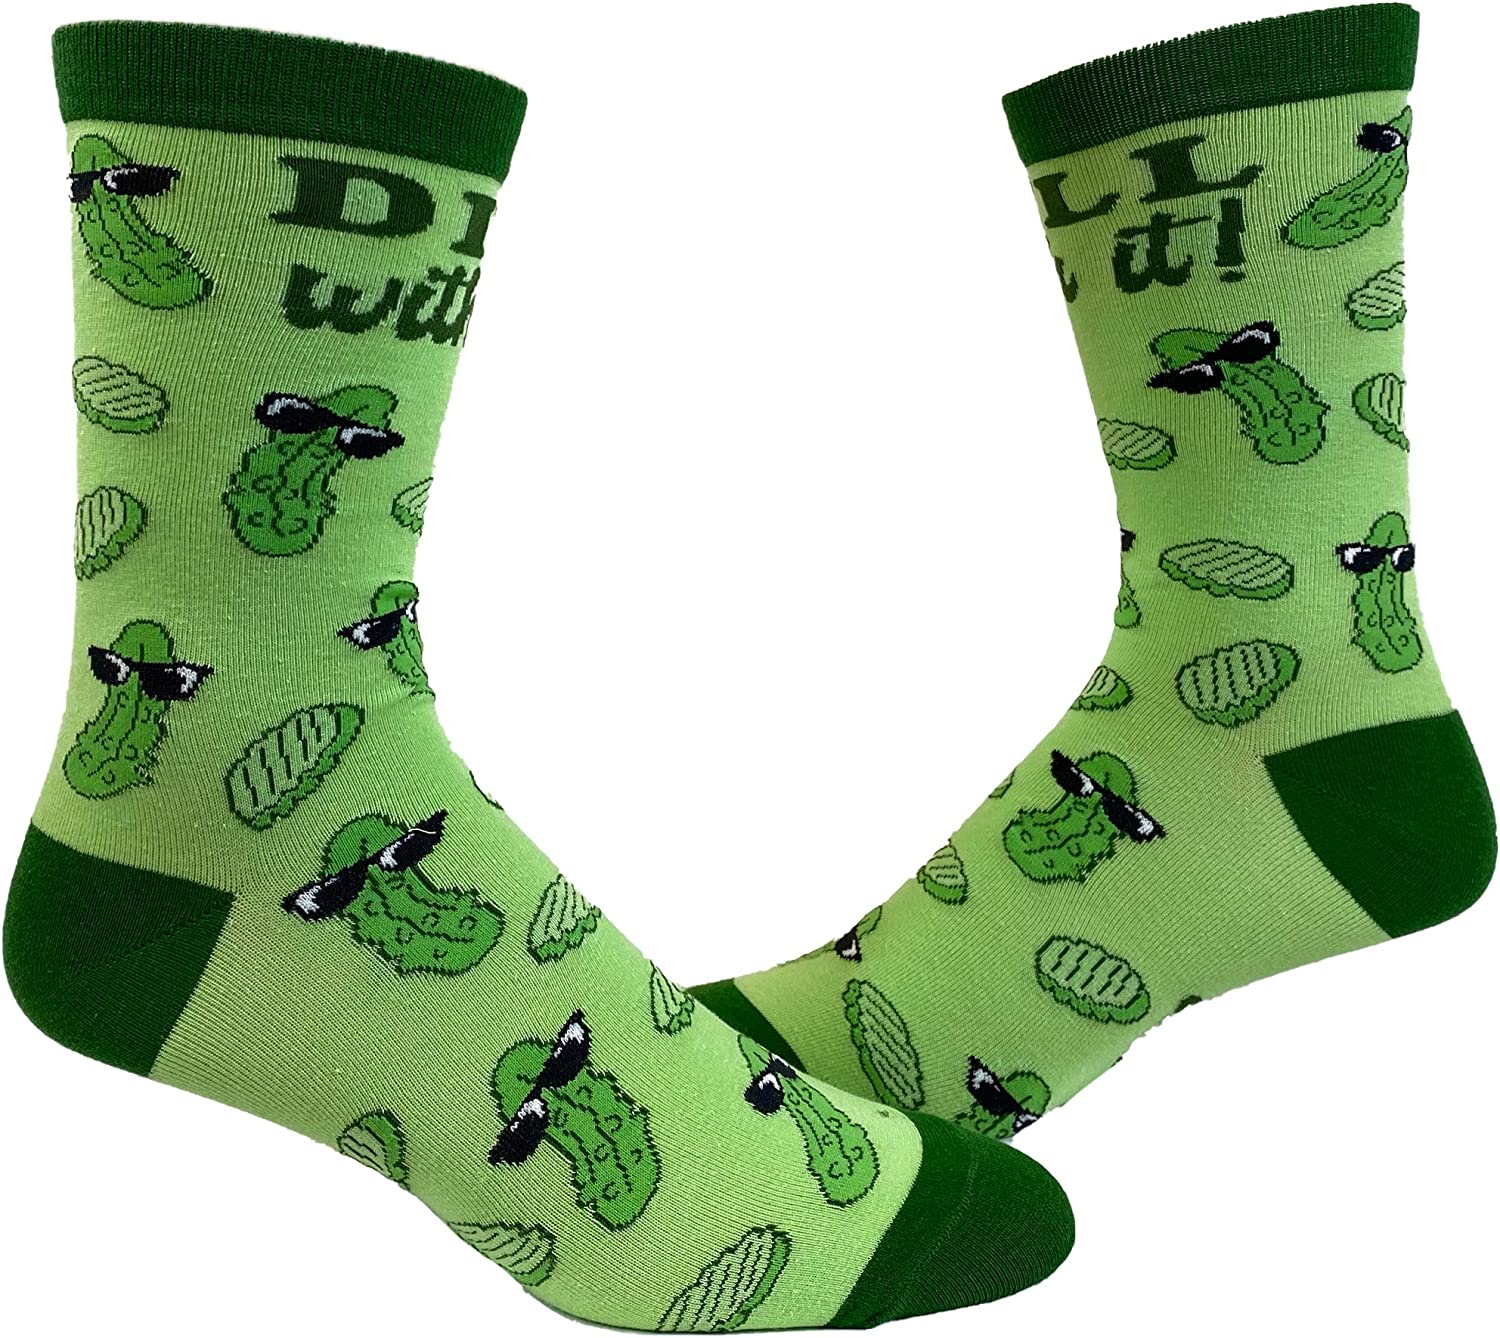 Youth National products Funny Food Socks Delicious Snack Eating Novelty Treat Foot Challenge the lowest price of Japan